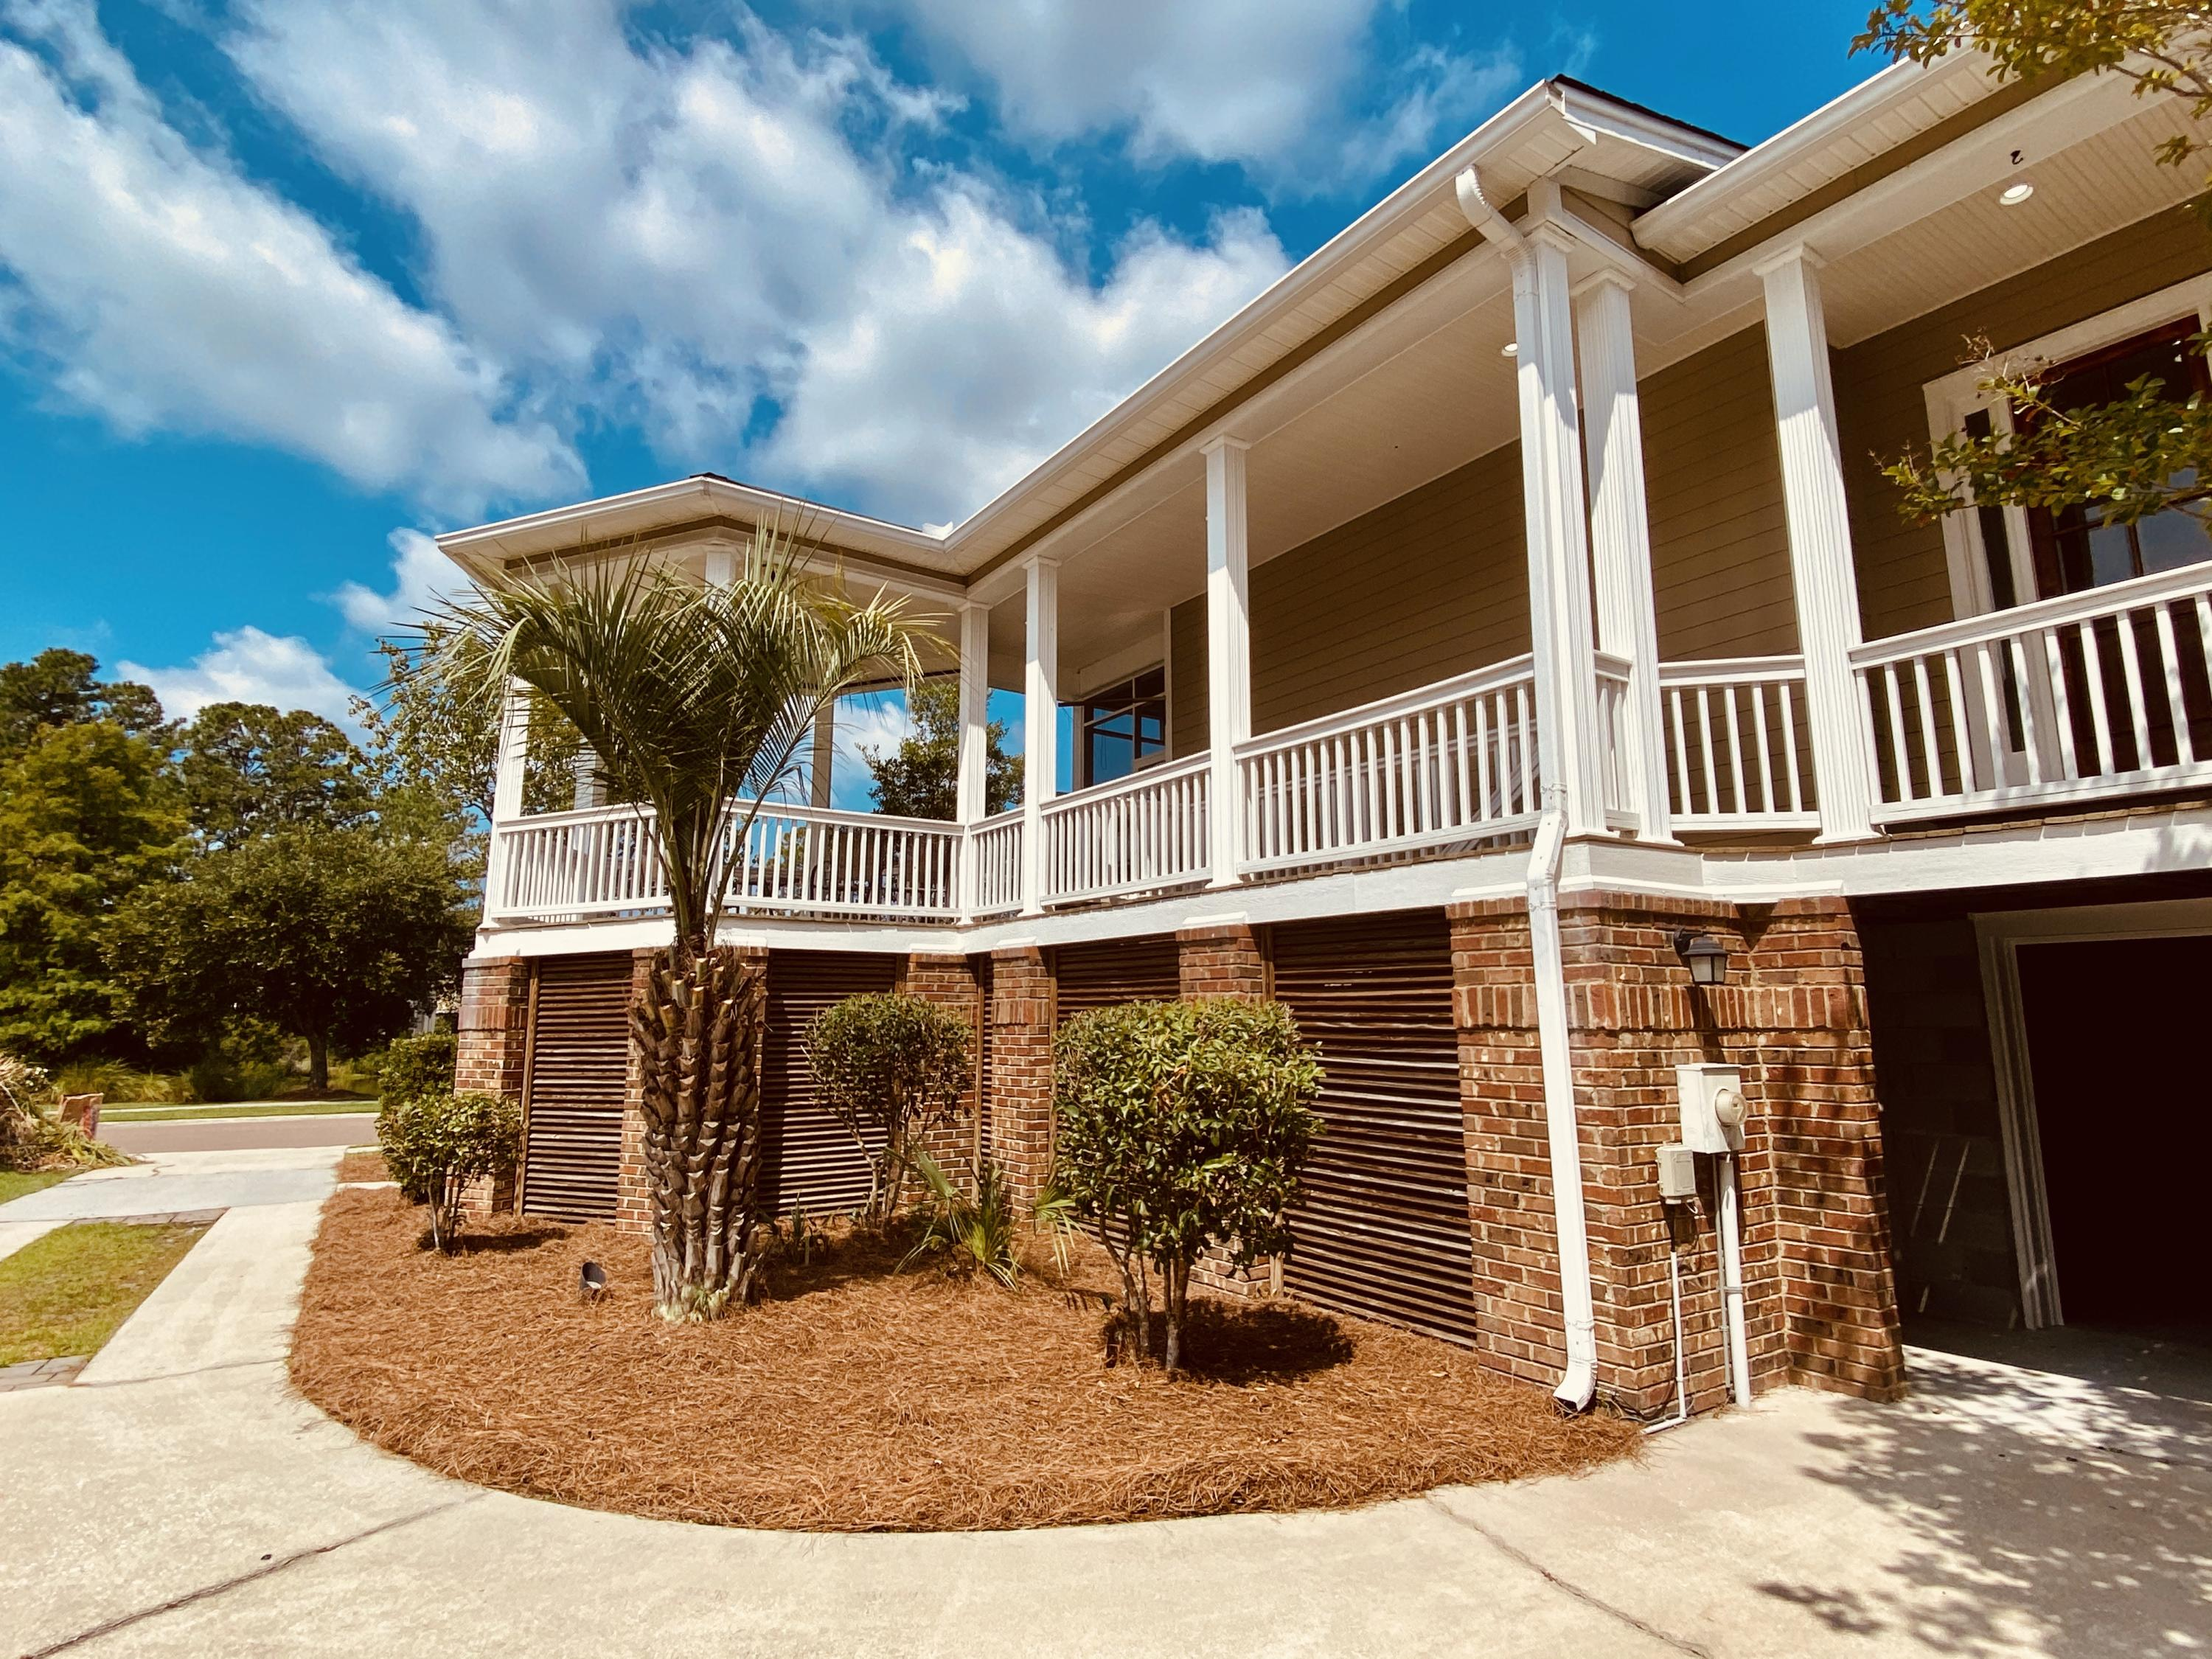 Rivertowne Country Club Homes For Sale - 1721 Rivertowne Country Club, Mount Pleasant, SC - 9